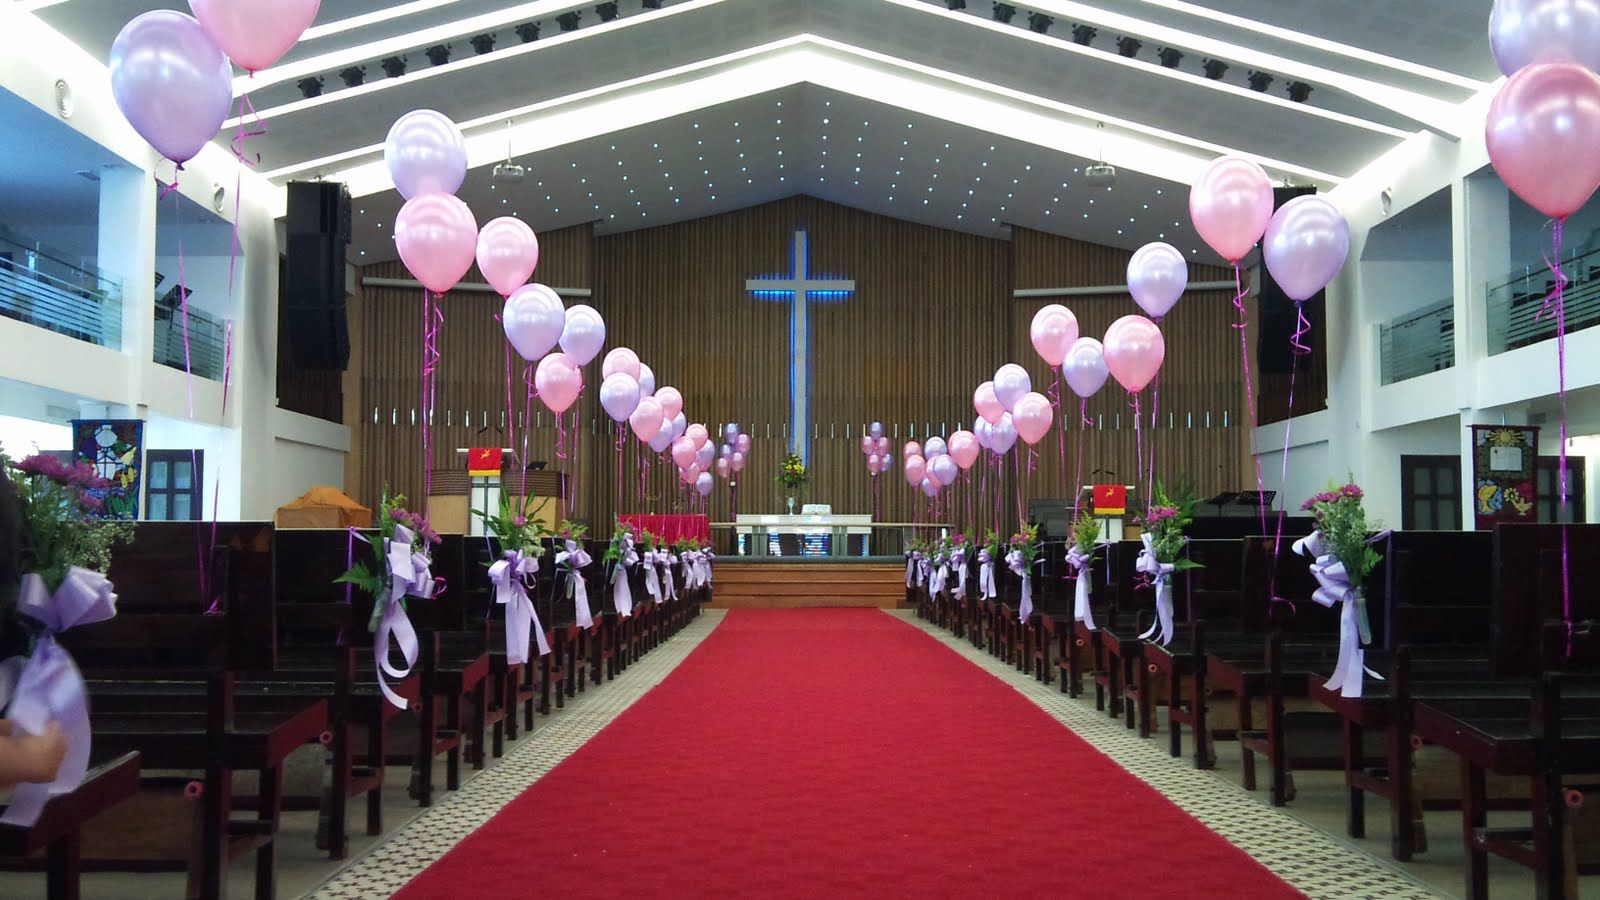 Church decoration like the balloons wedding stuff pinterest balloon decorations for weddings birthday parties balloon sculptures in kuching and sibu sarawak fu yuan church wedding decoration on may 2009 junglespirit Choice Image